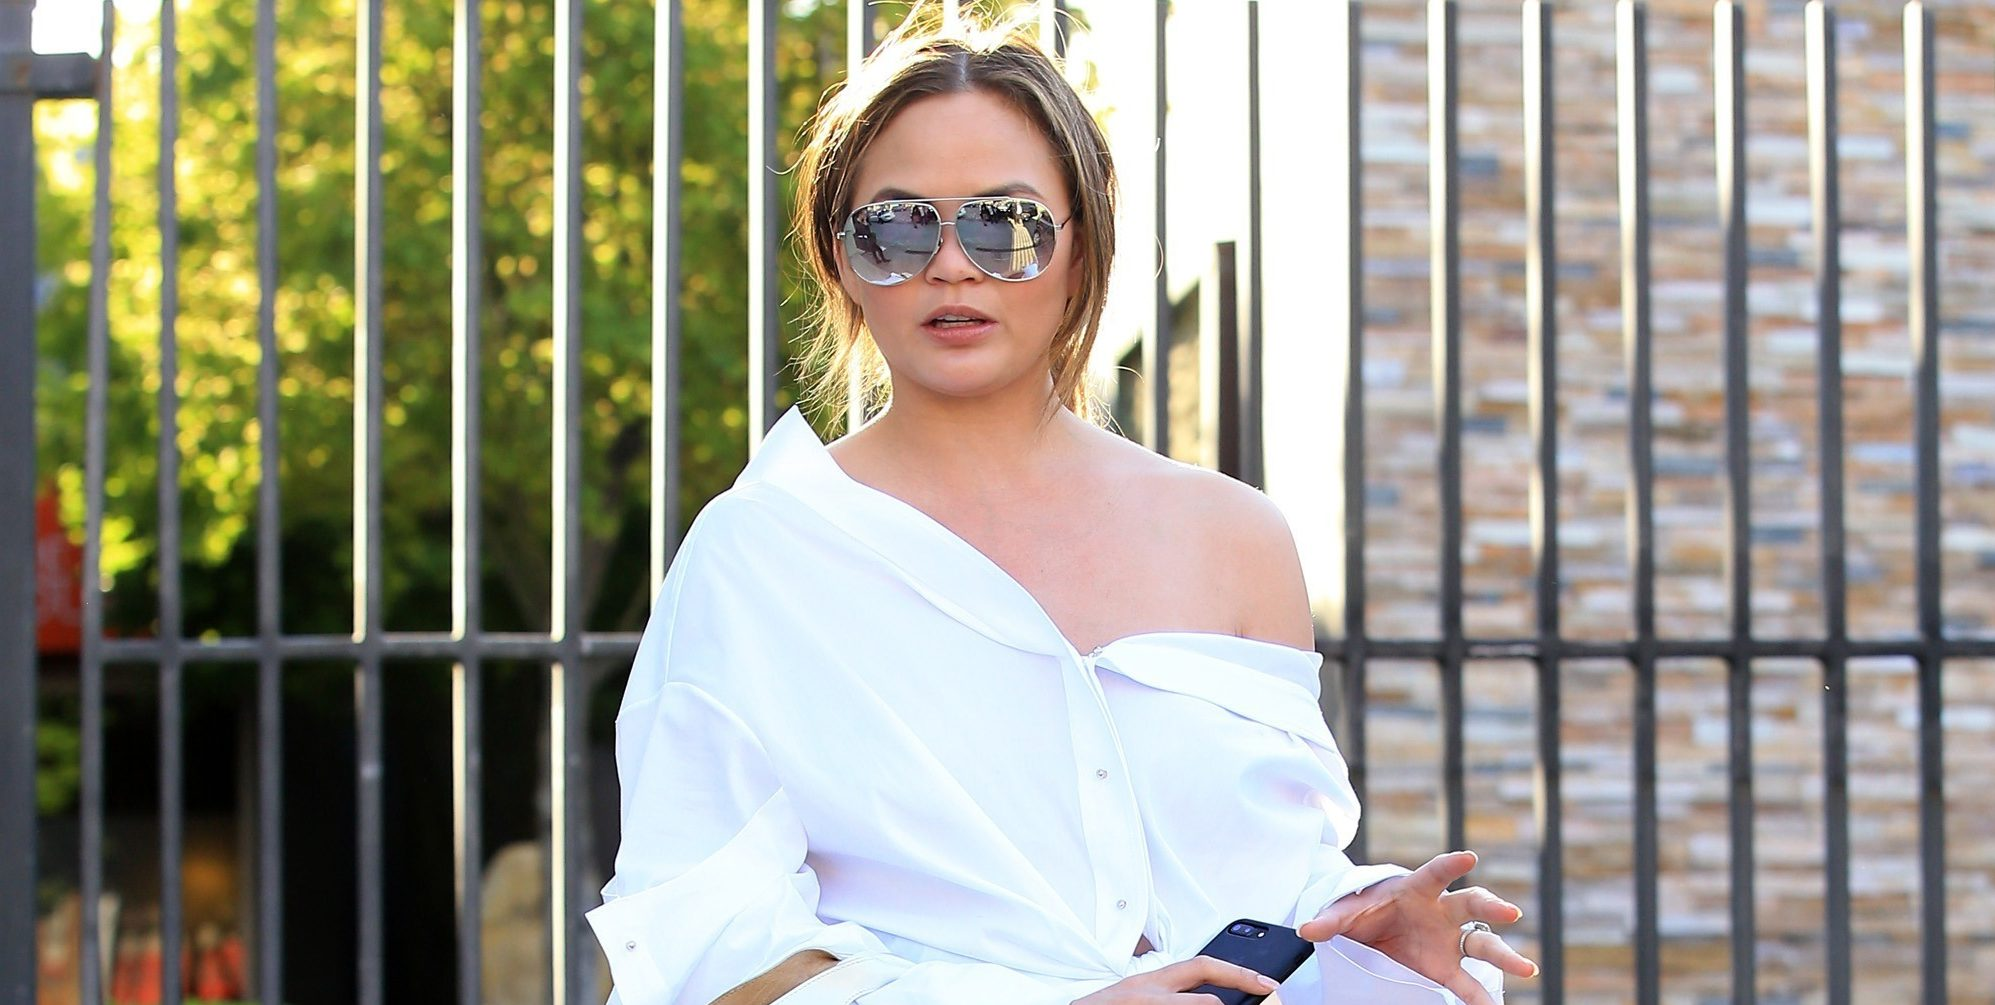 Chrissy Teigen Opens Up About Struggling With Alcohol: I Have to Fix Myself recommendations